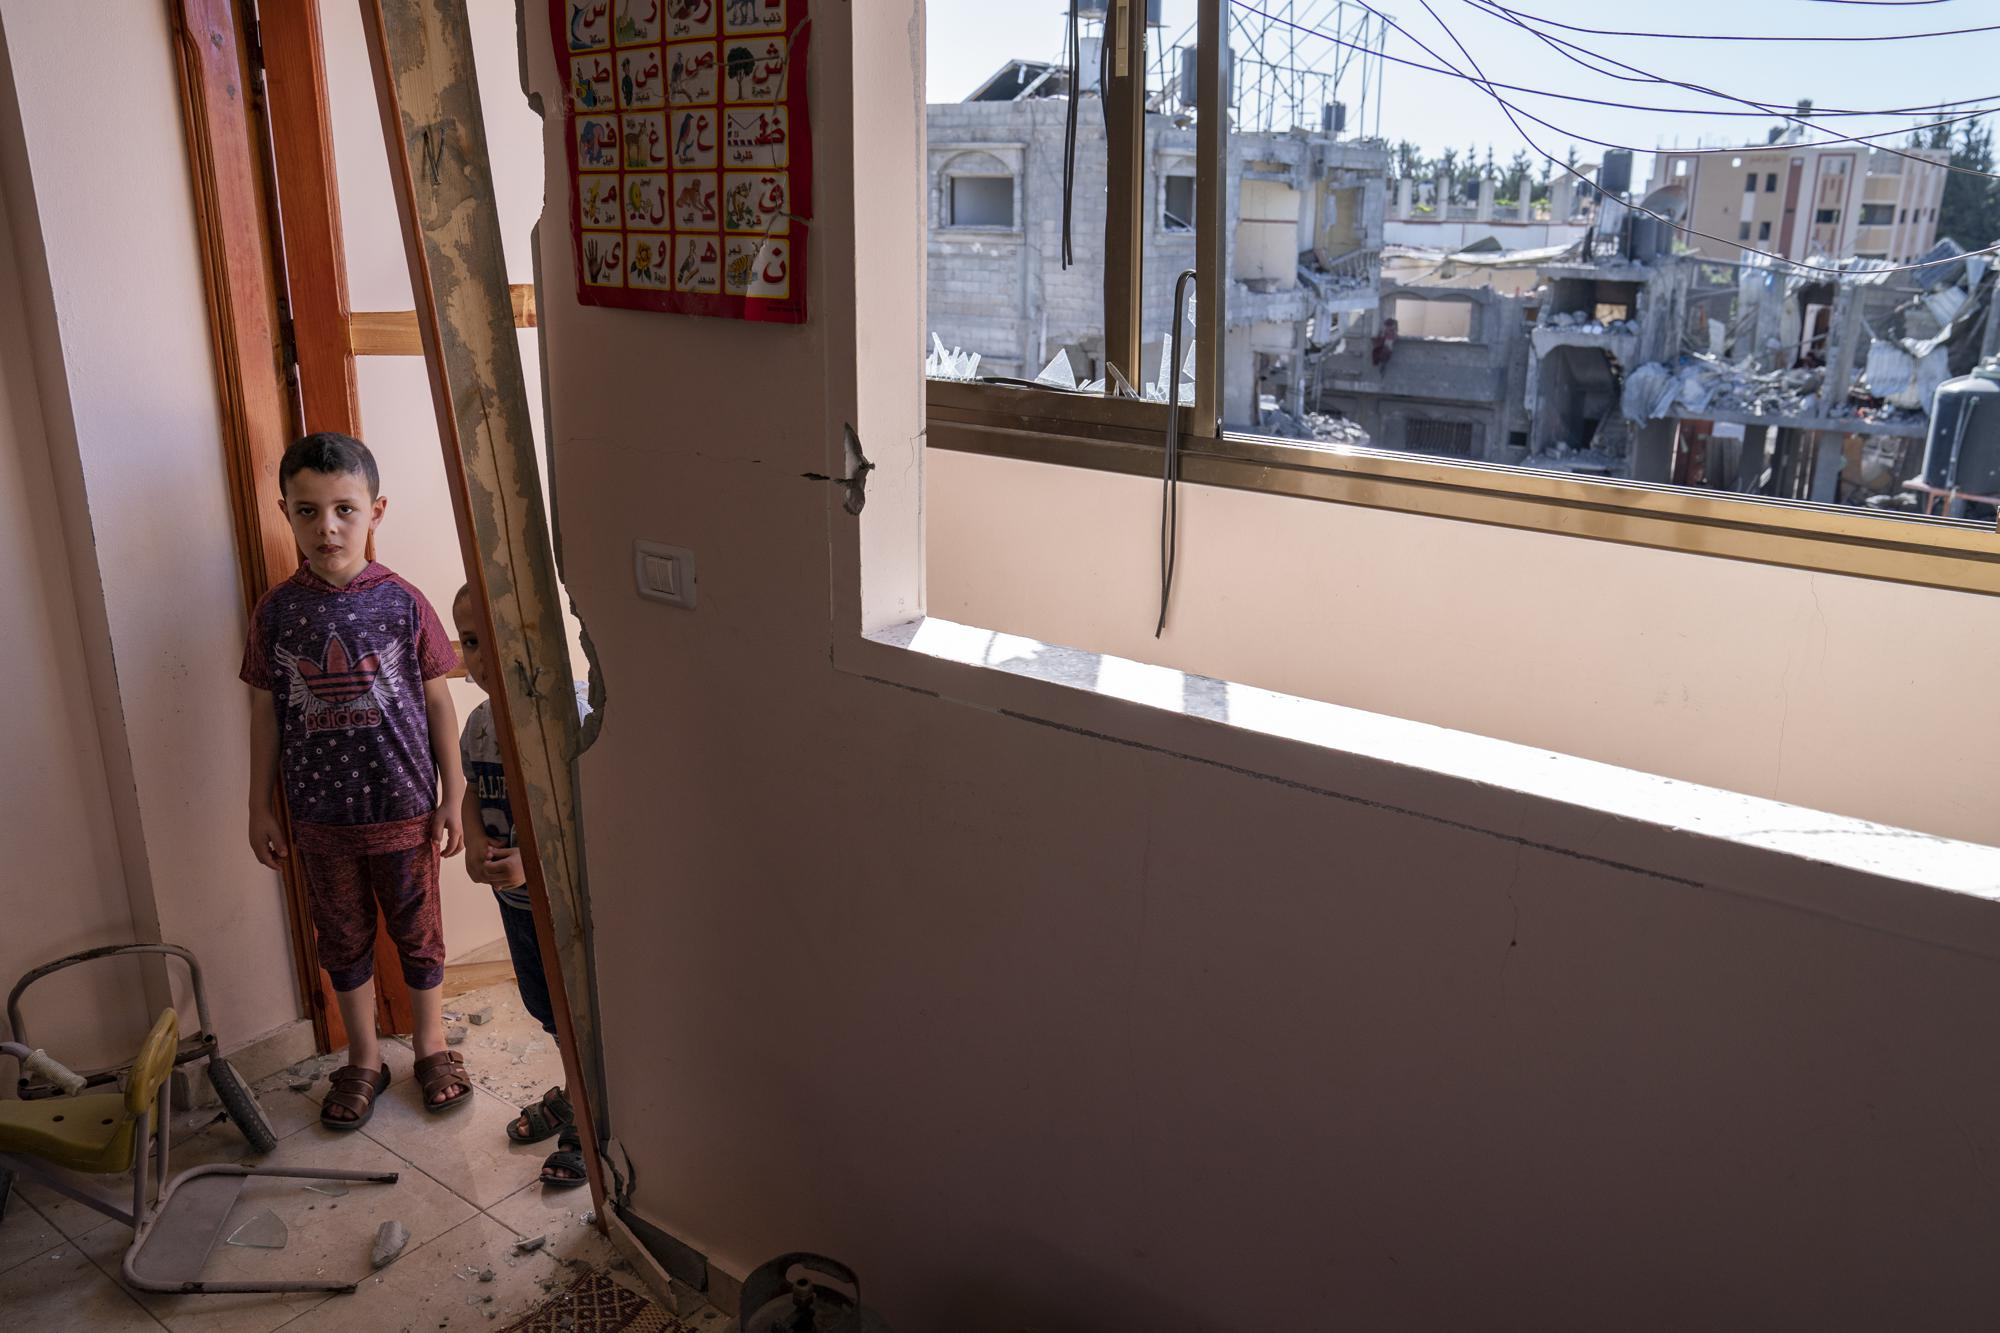 Awny Abed, 6, left, and his brother Salem, 5, stand for a portrait in their bedroom that was damaged when an airstrike destroyed the neighboring building prior to a cease-fire that halted an 11-day war between Gaza's Hamas rulers and Israel, Thursday, May 27, 2021, in Maghazi, Gaza Strip. (AP Photo/John Minchillo)